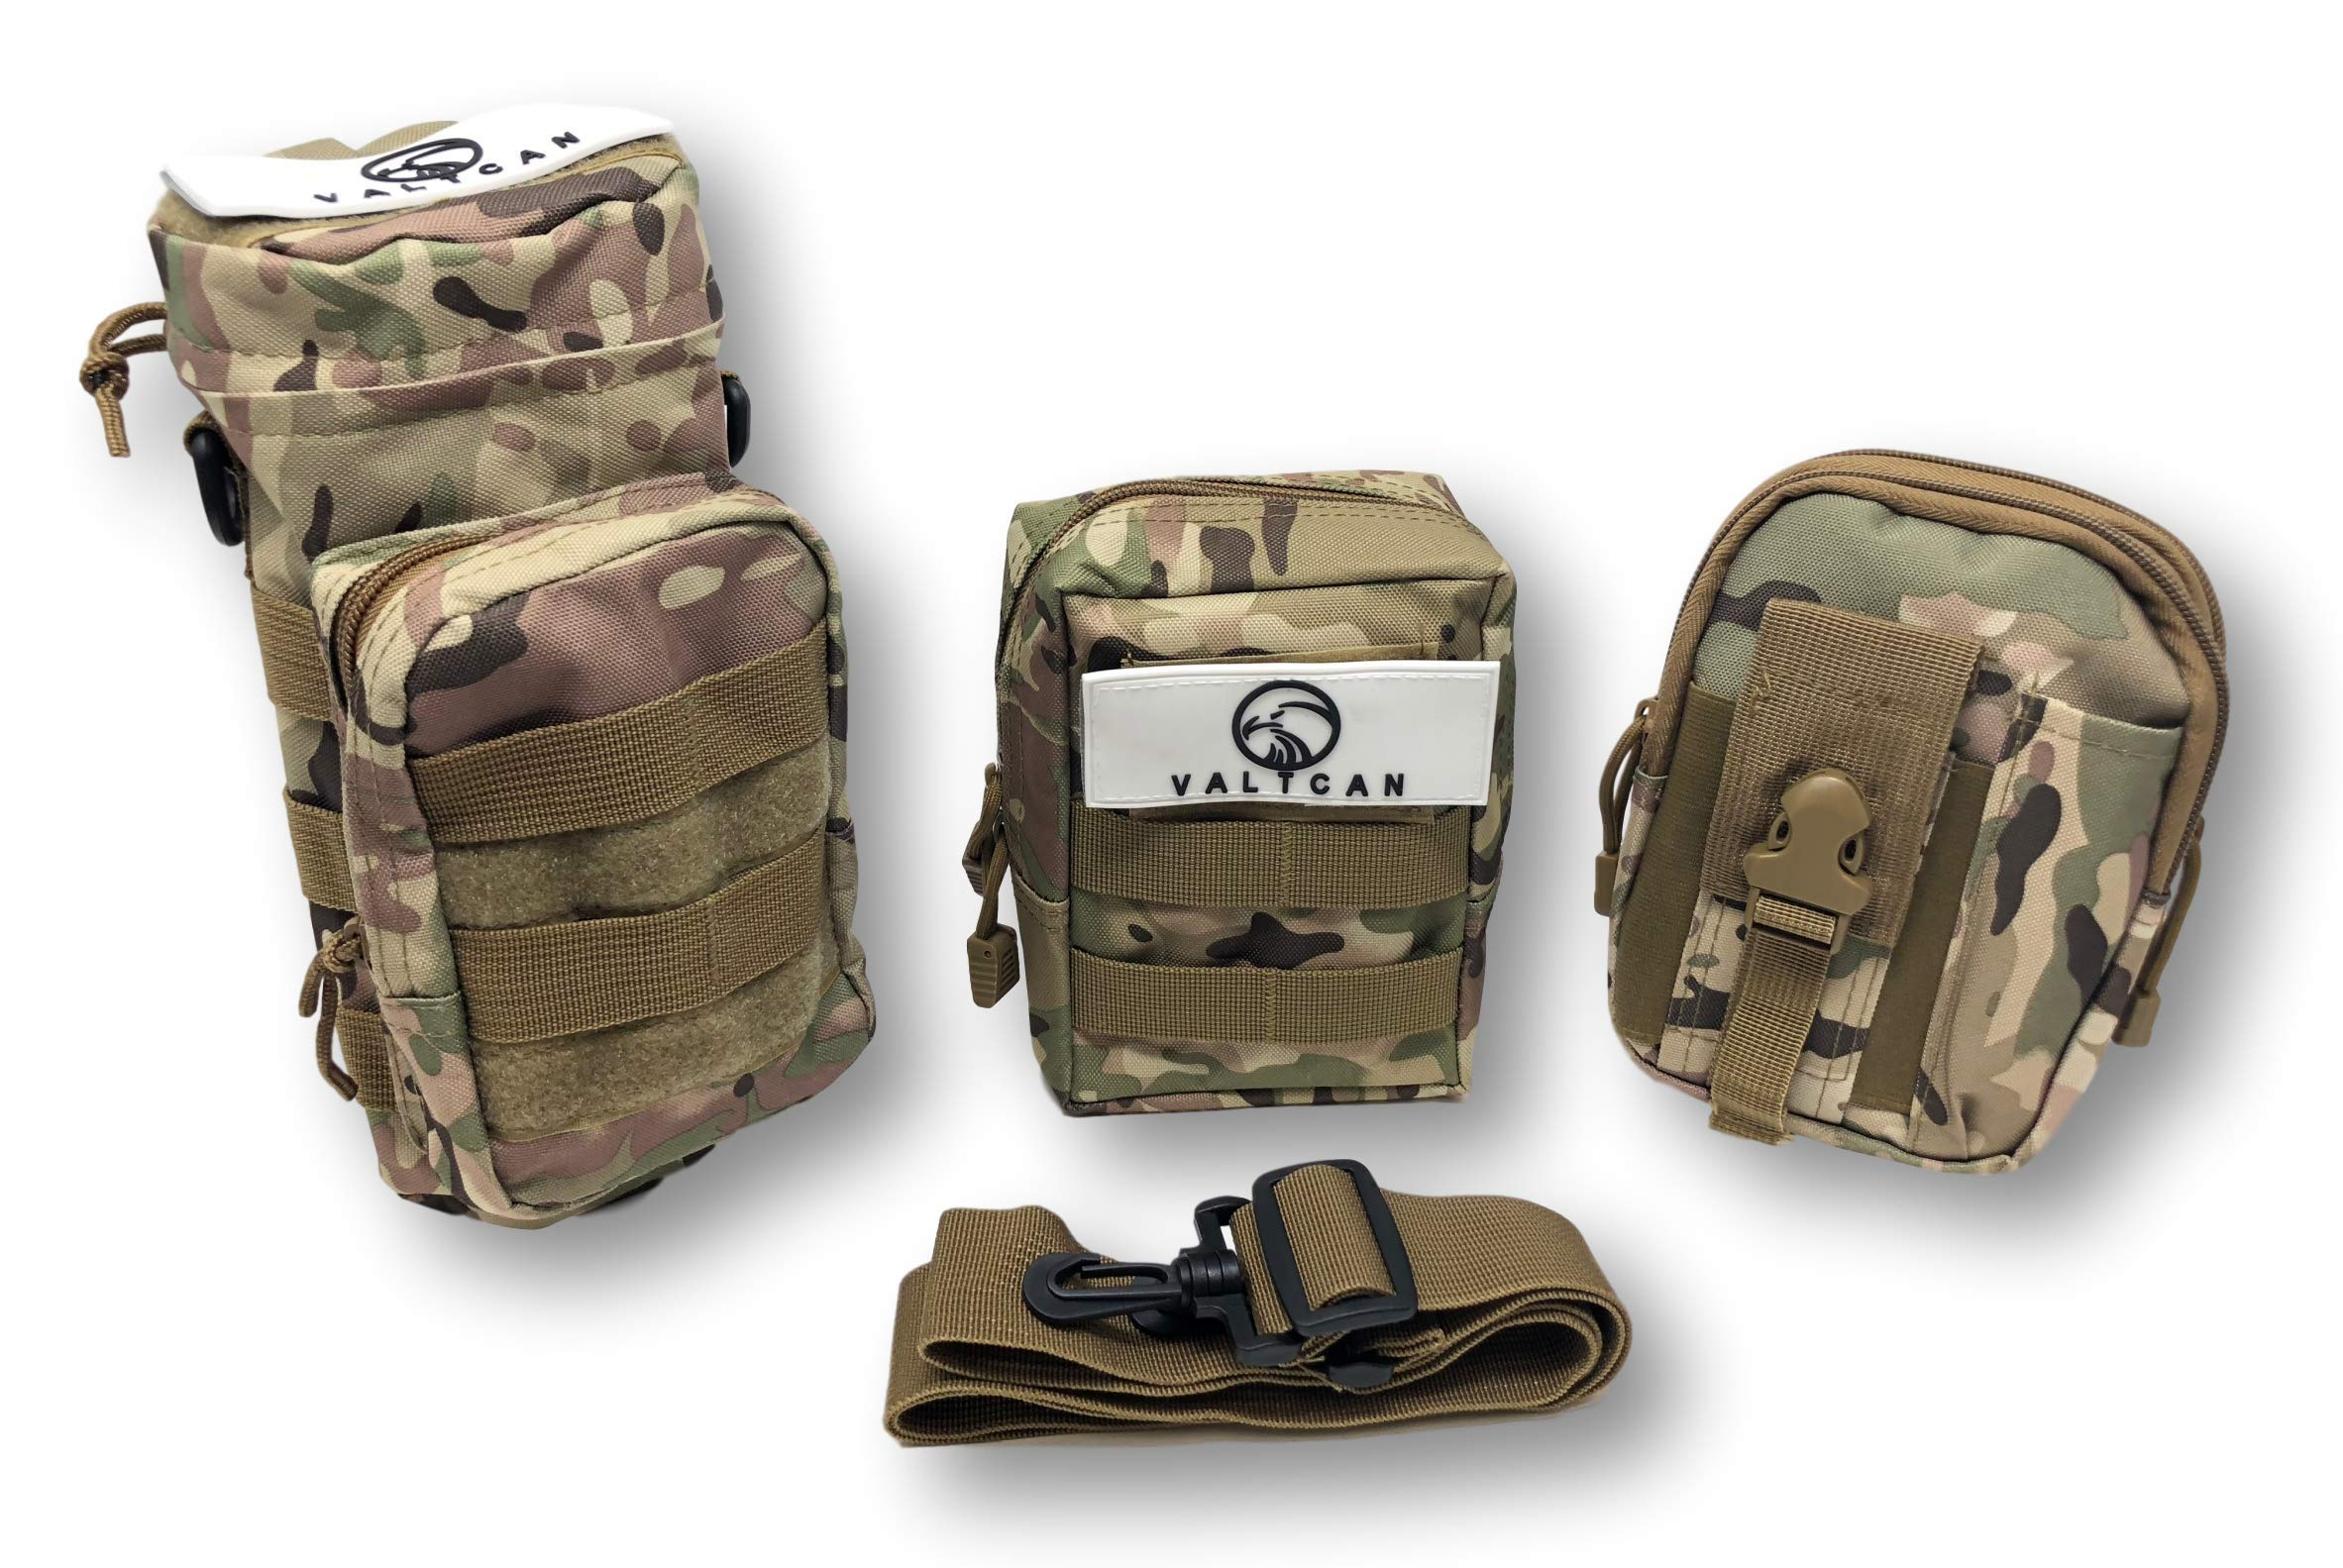 Valtcan Tactical Molle Bags Water Bottle, Mobile Phone, and Camping Hiking Pouches 3 Pack Set